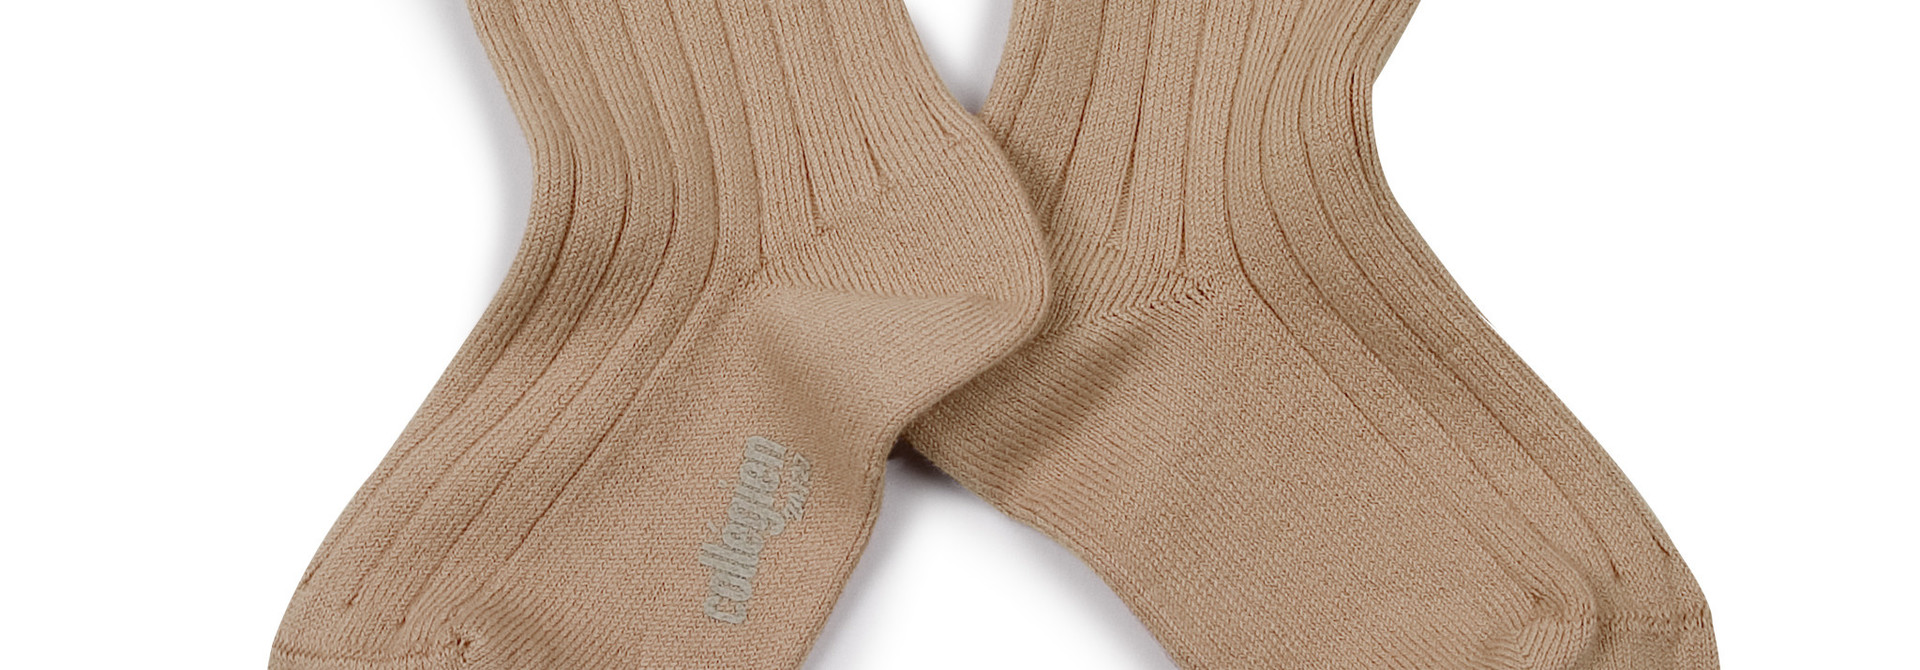 Lace Frill socks 'Margaux' Petite Taupe